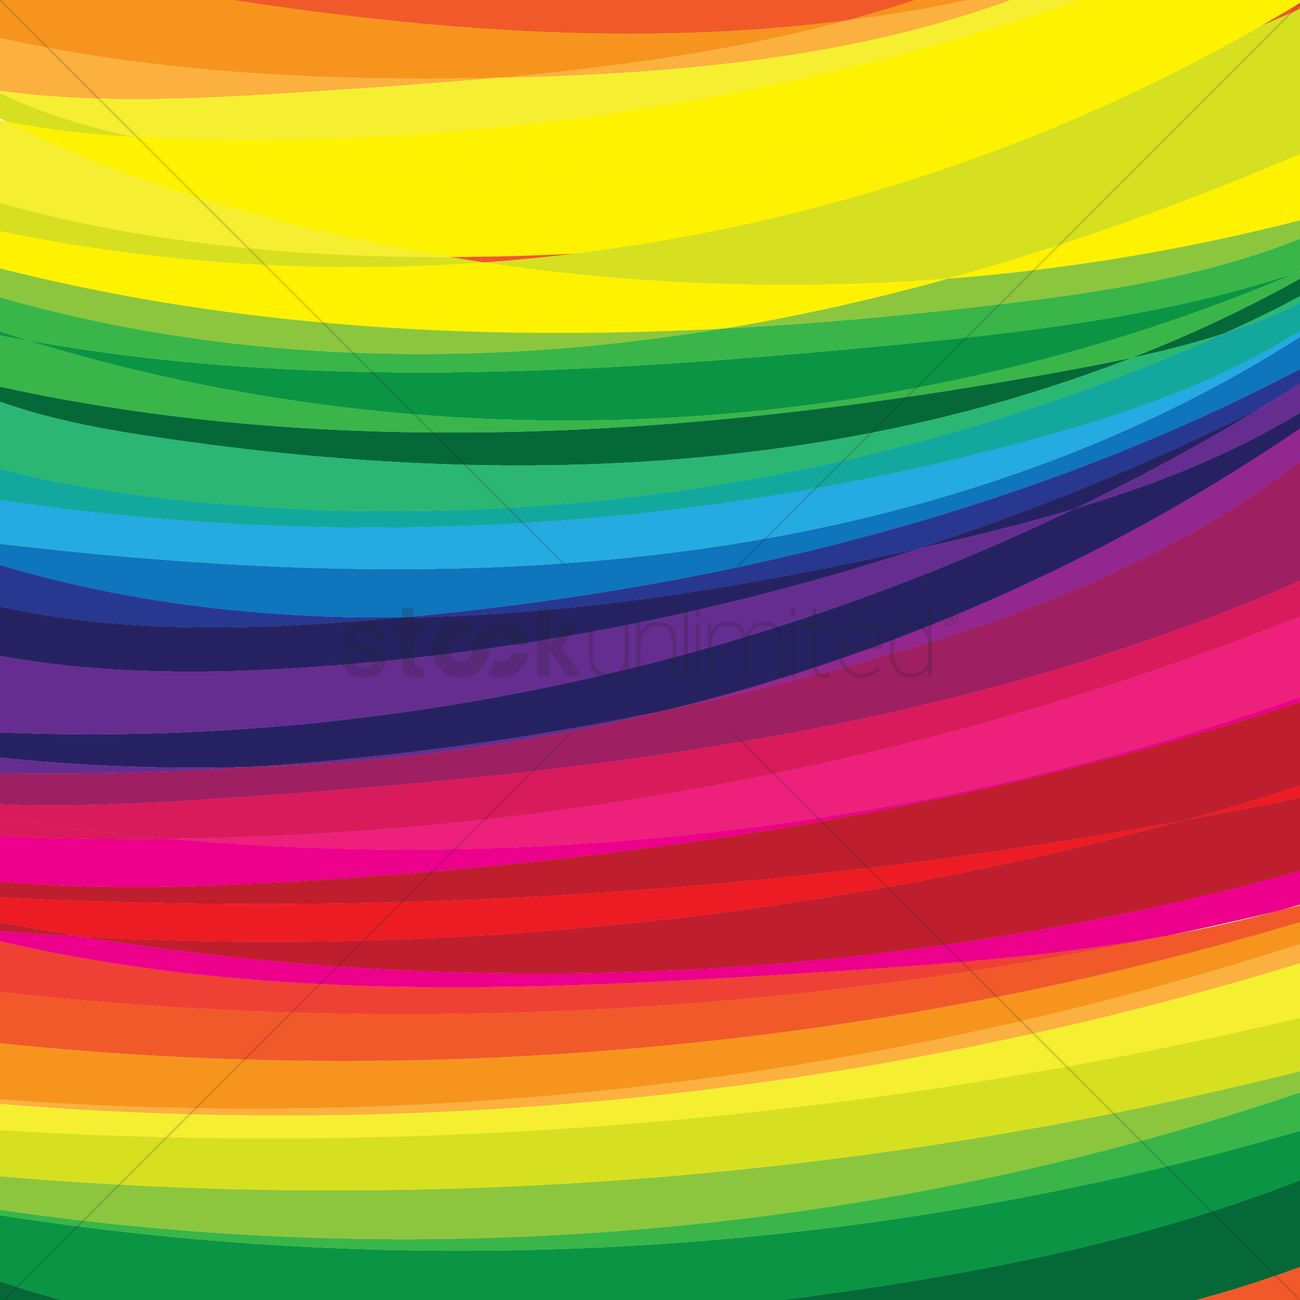 Rainbow curve background Vector Image - 1527074 | StockUnlimited